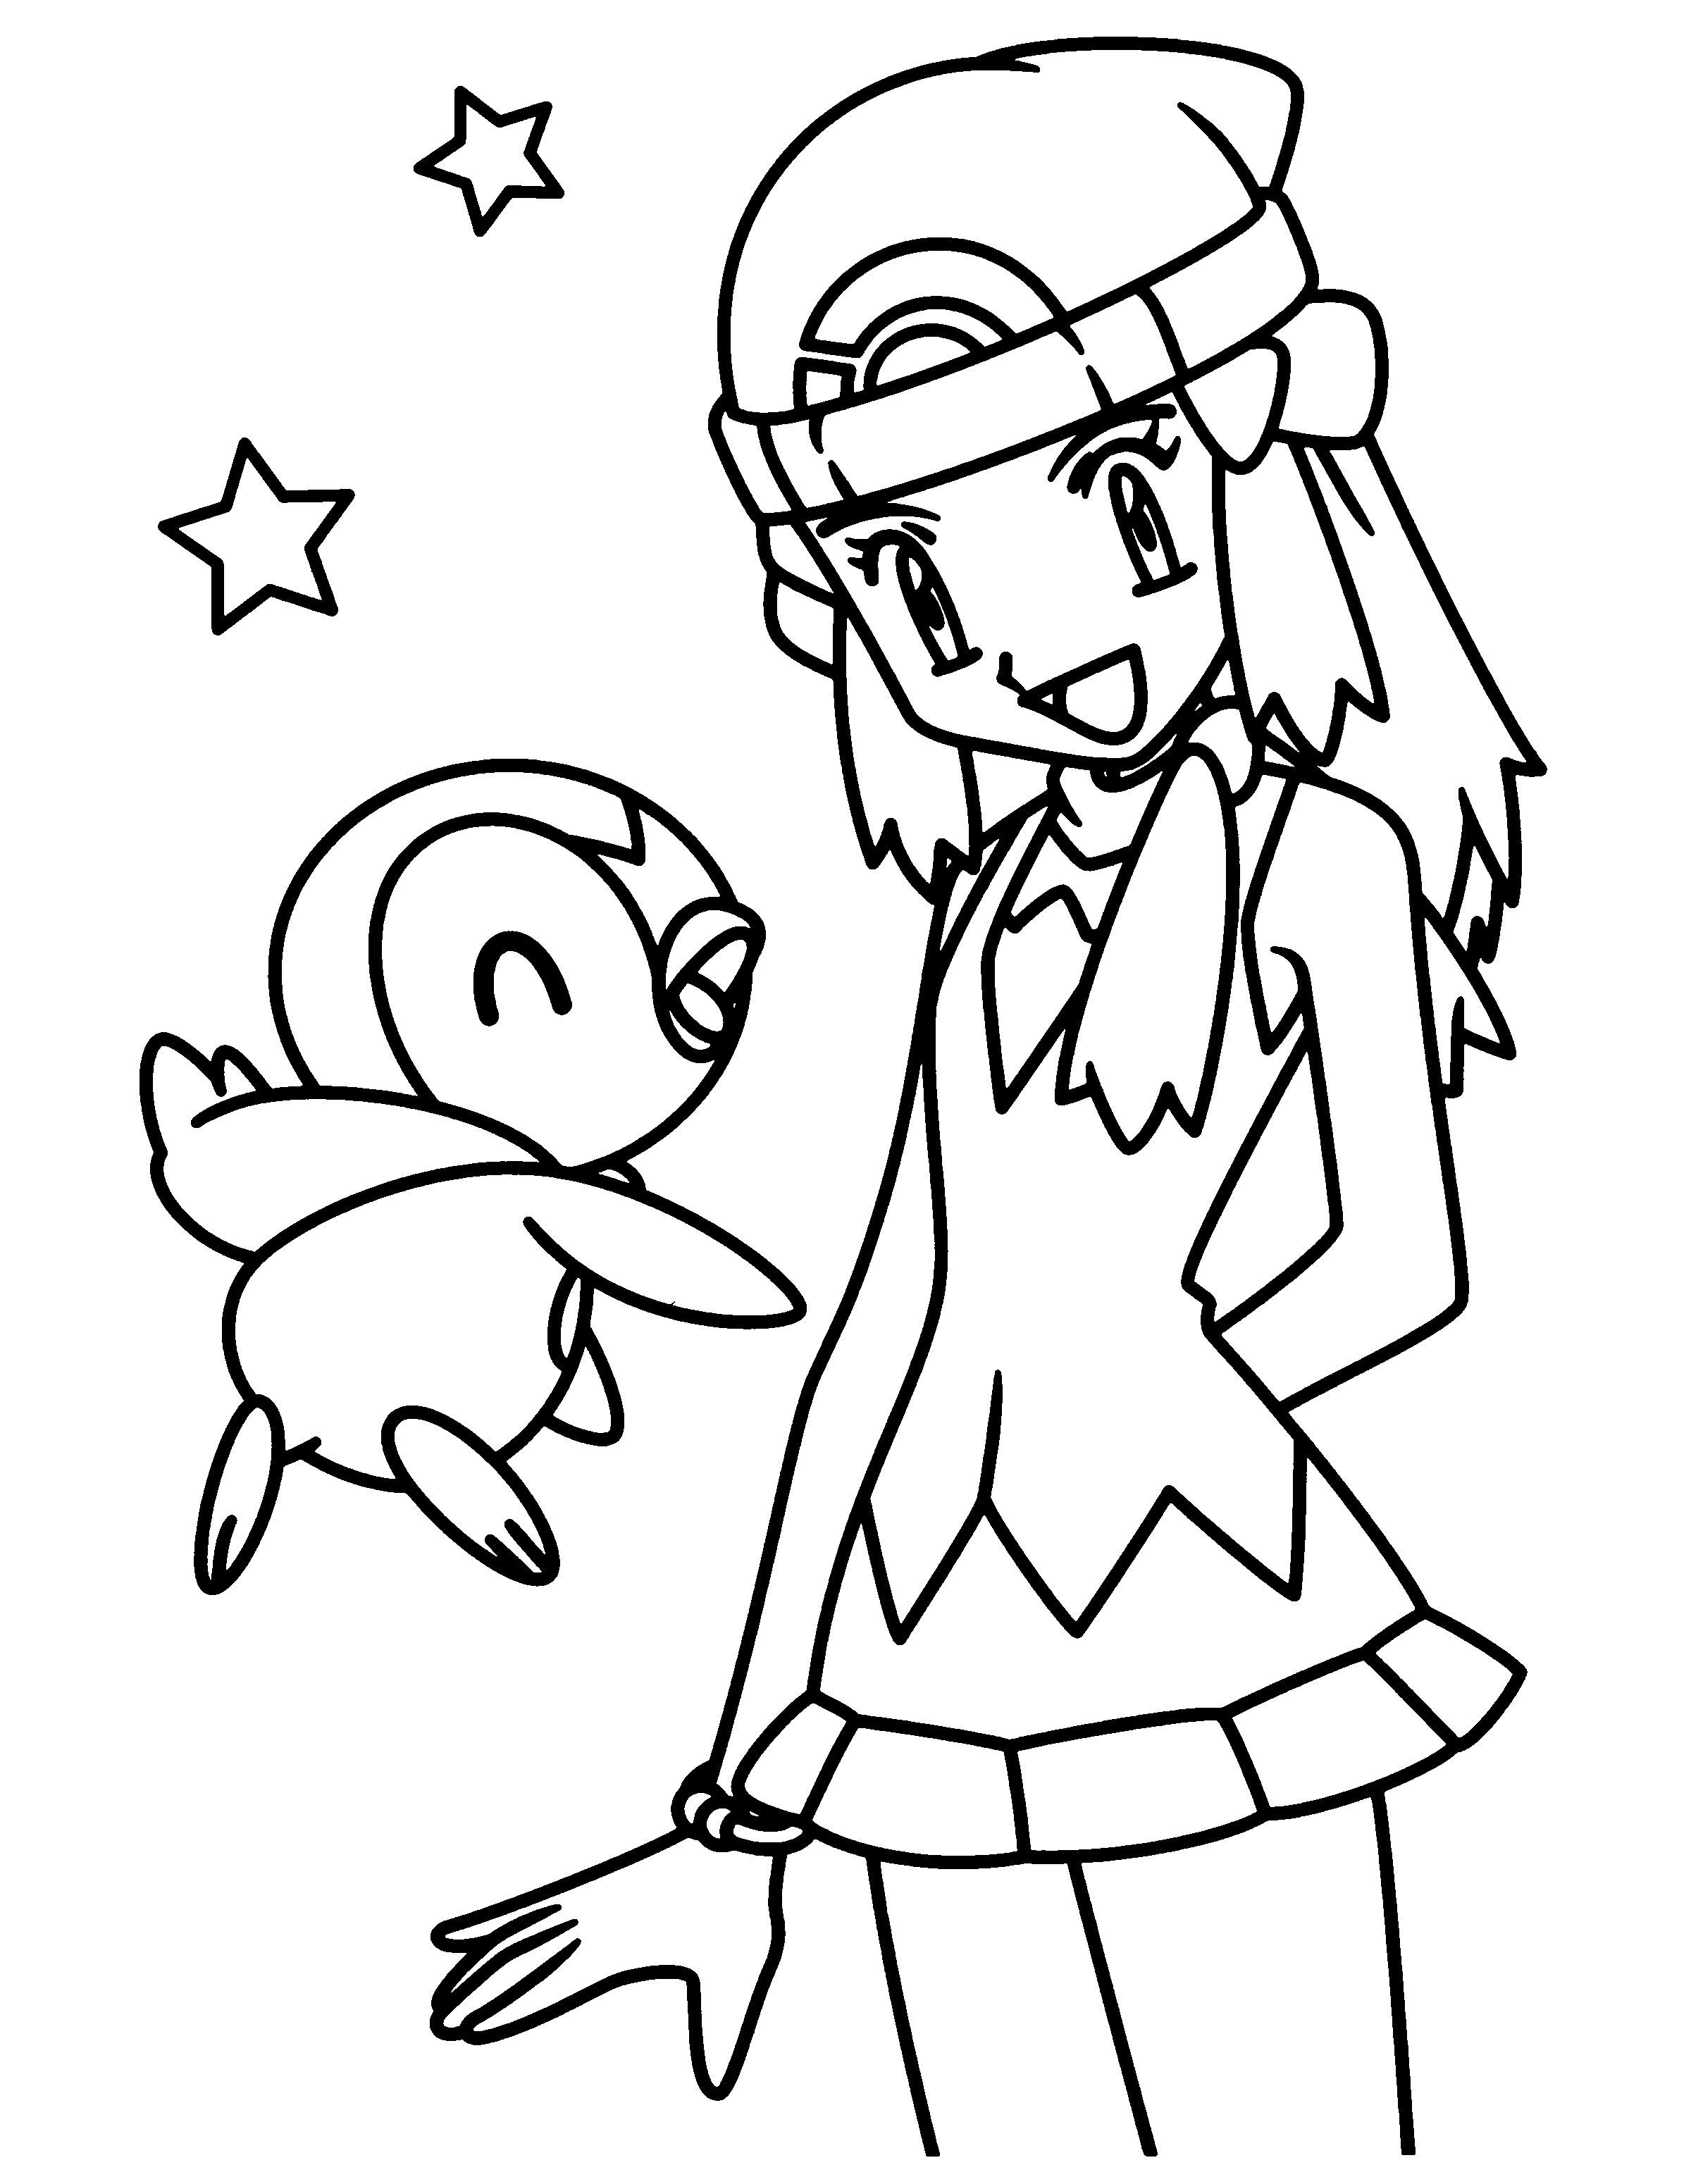 Pokemon Girl Coloring Pages From The Thousands Of Photos On The Net Concerning Pokemon Girl Col Pokemon Coloring Cartoon Coloring Pages Online Coloring Pages